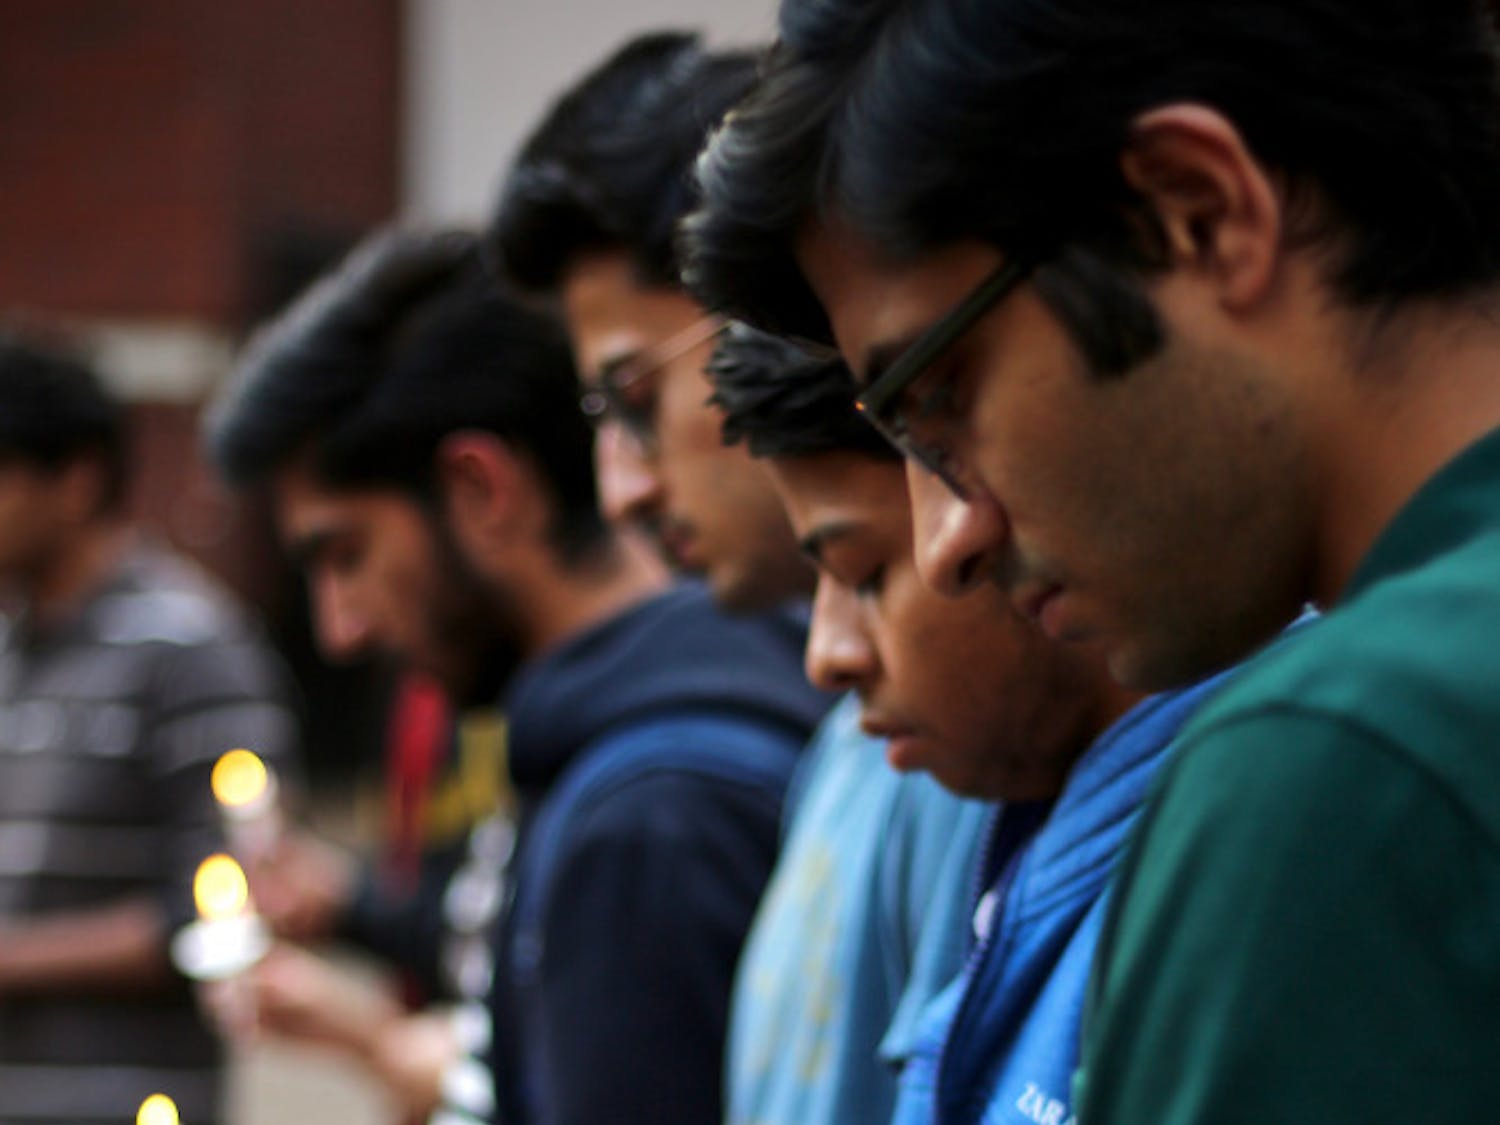 On Monday, about 100 stood on Turlington Plaza to mourn the death of KaranKhullar, a 22-year-old foreign exchange student who died on Feb. 11 after he was hit at a bus stop by a drunken driver, police said.